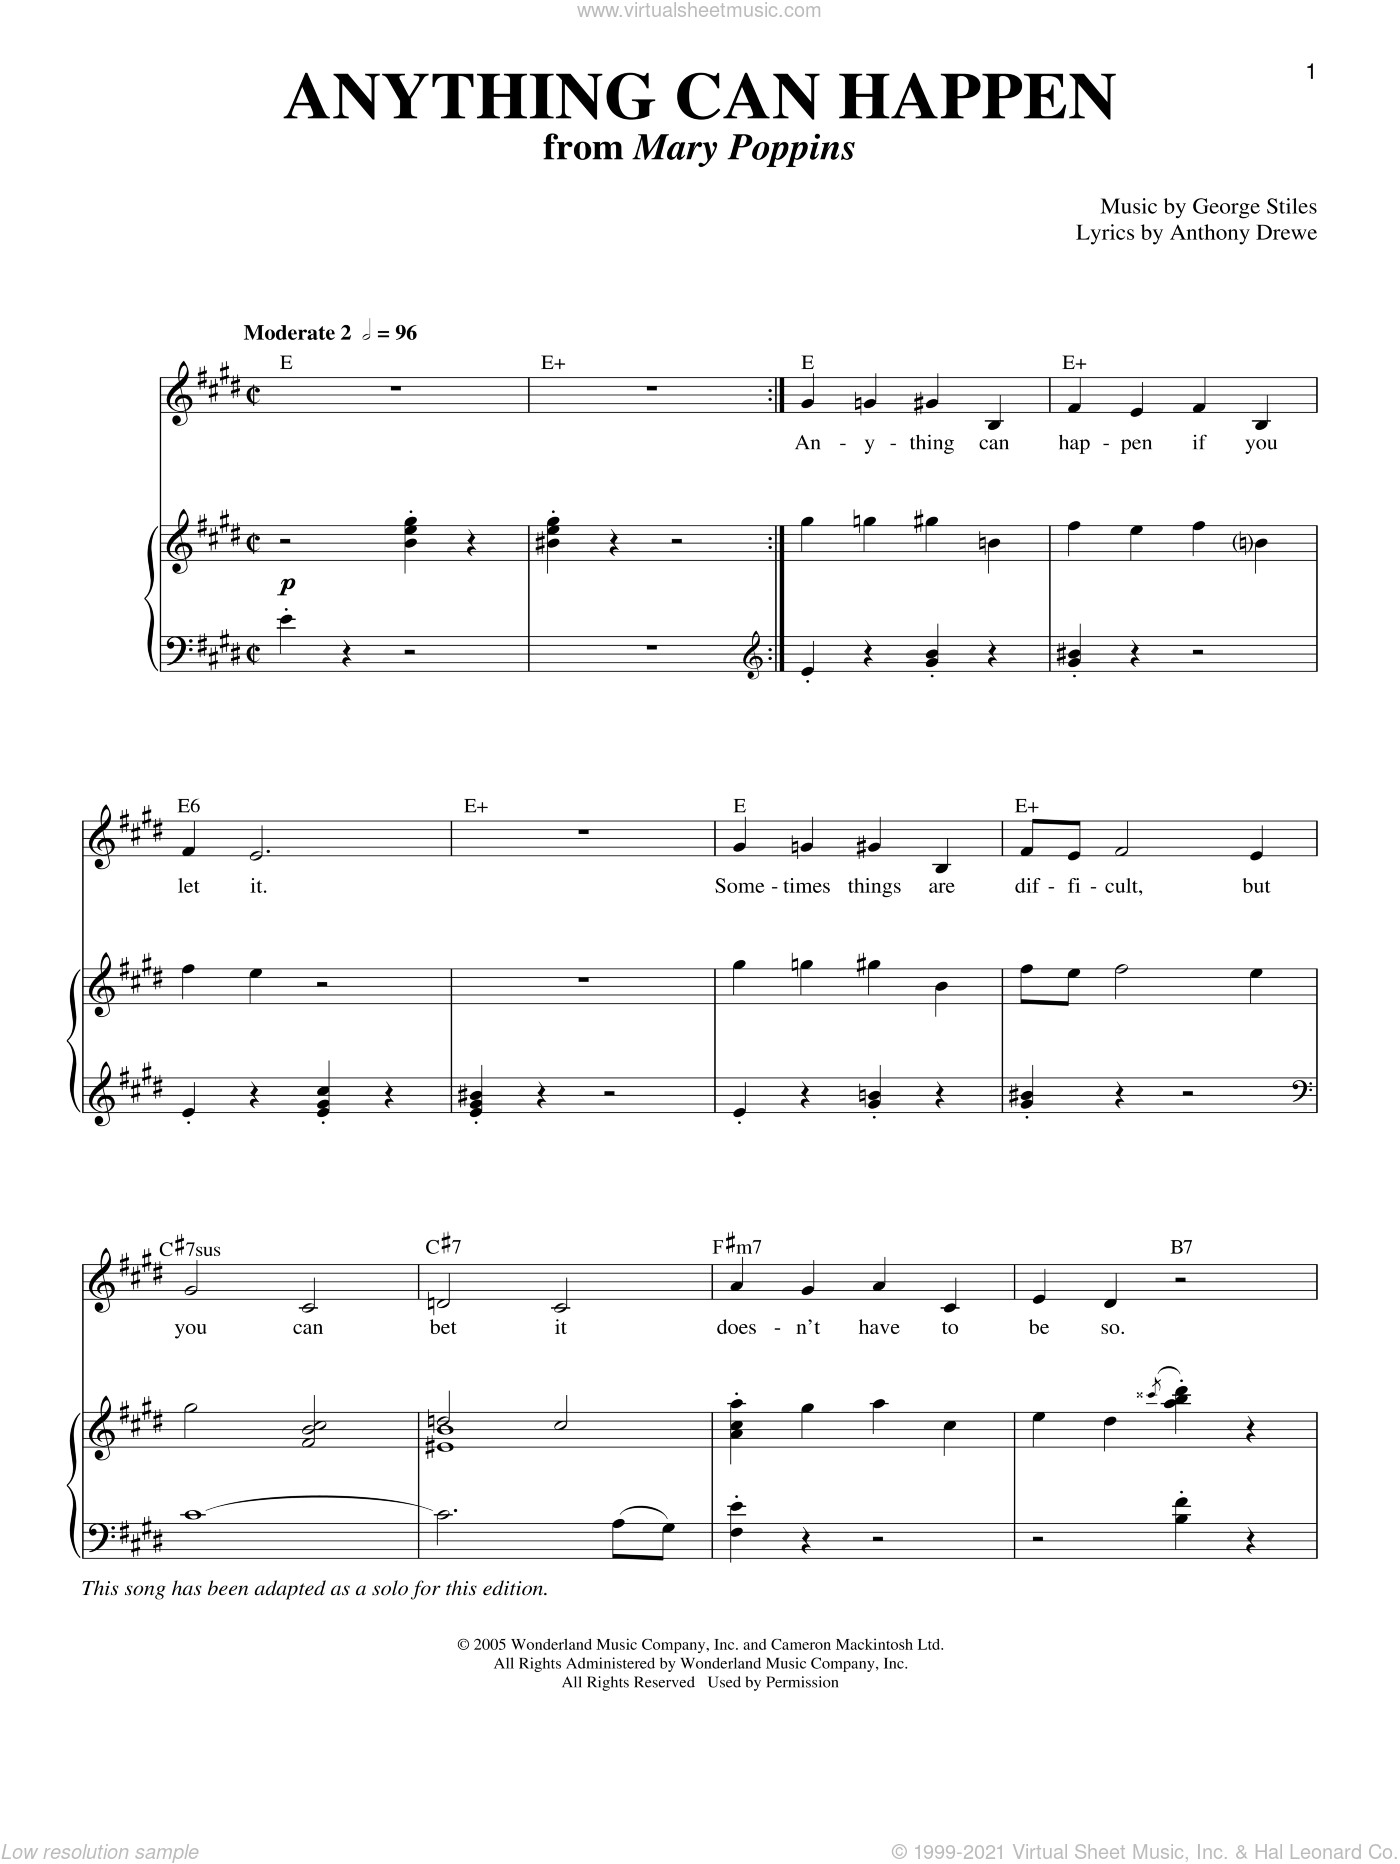 Anything Can Happen sheet music for voice and piano by Anthony Drewe and George Stiles, intermediate skill level